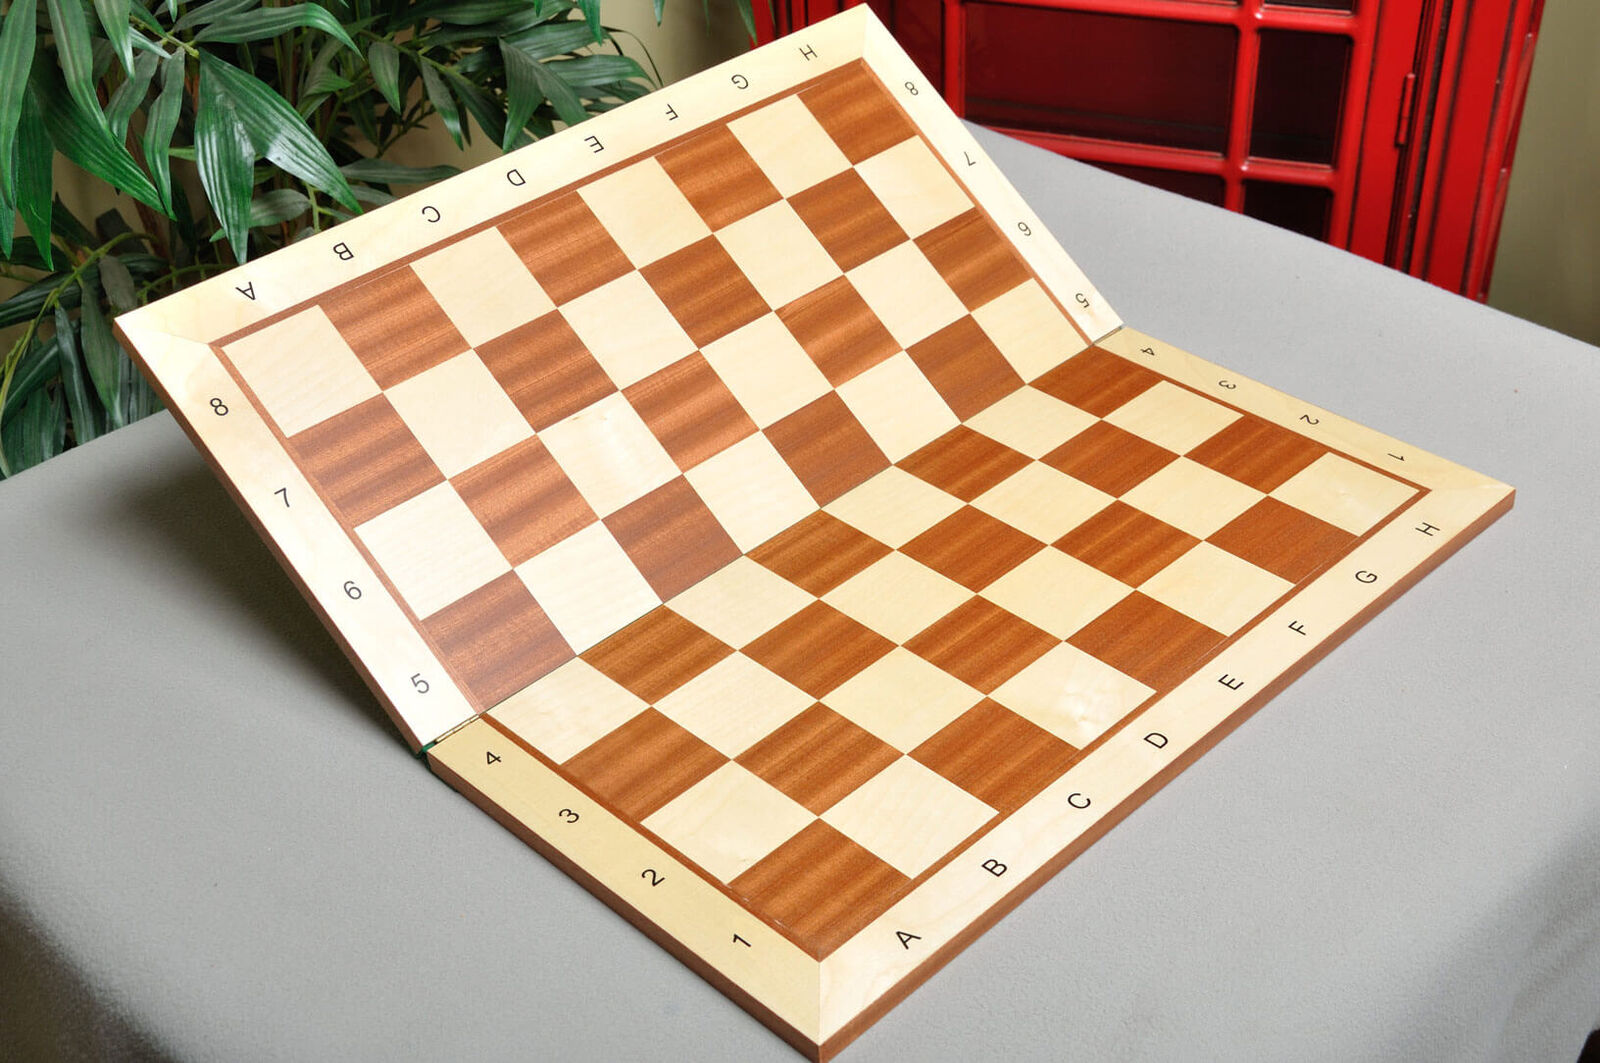 Folding Maple & Mahogany Wooden Chess Board - 2.25  With Notation